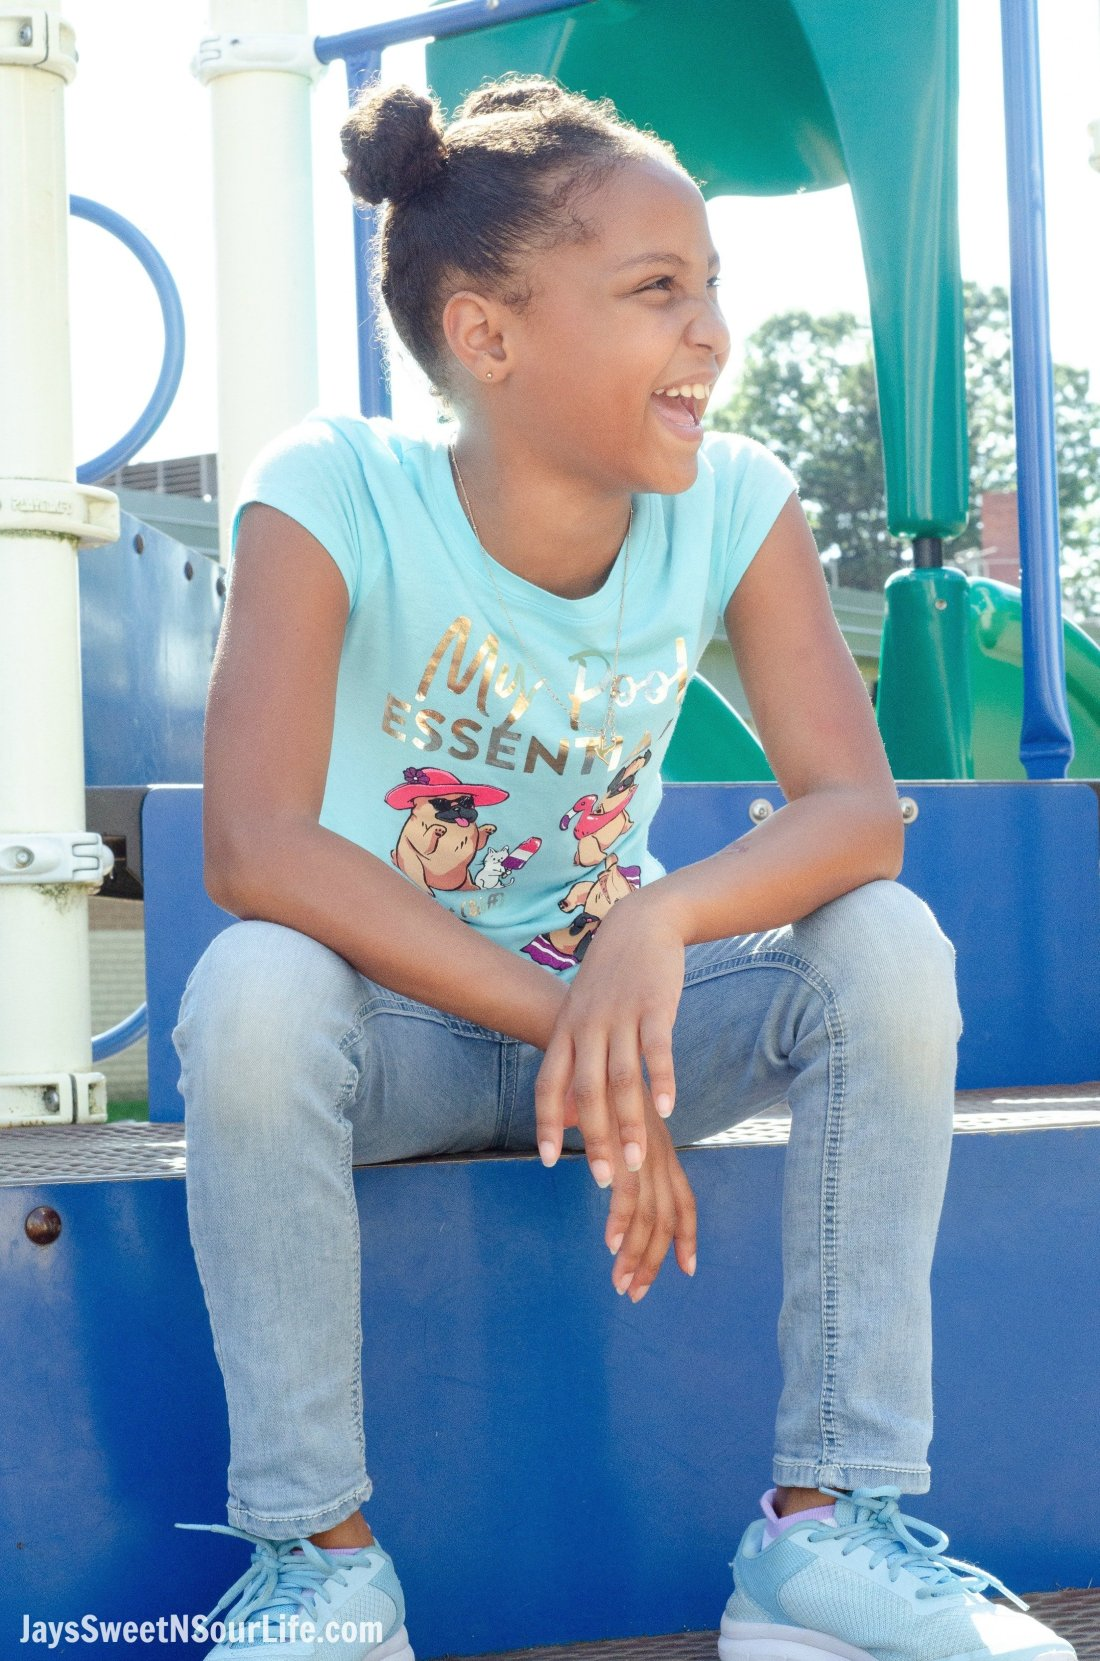 Justice Back To School Shirt Lifestyle Shot. Back To School Must Have Fashion For Tweens via JaysSweetNSourLife.com